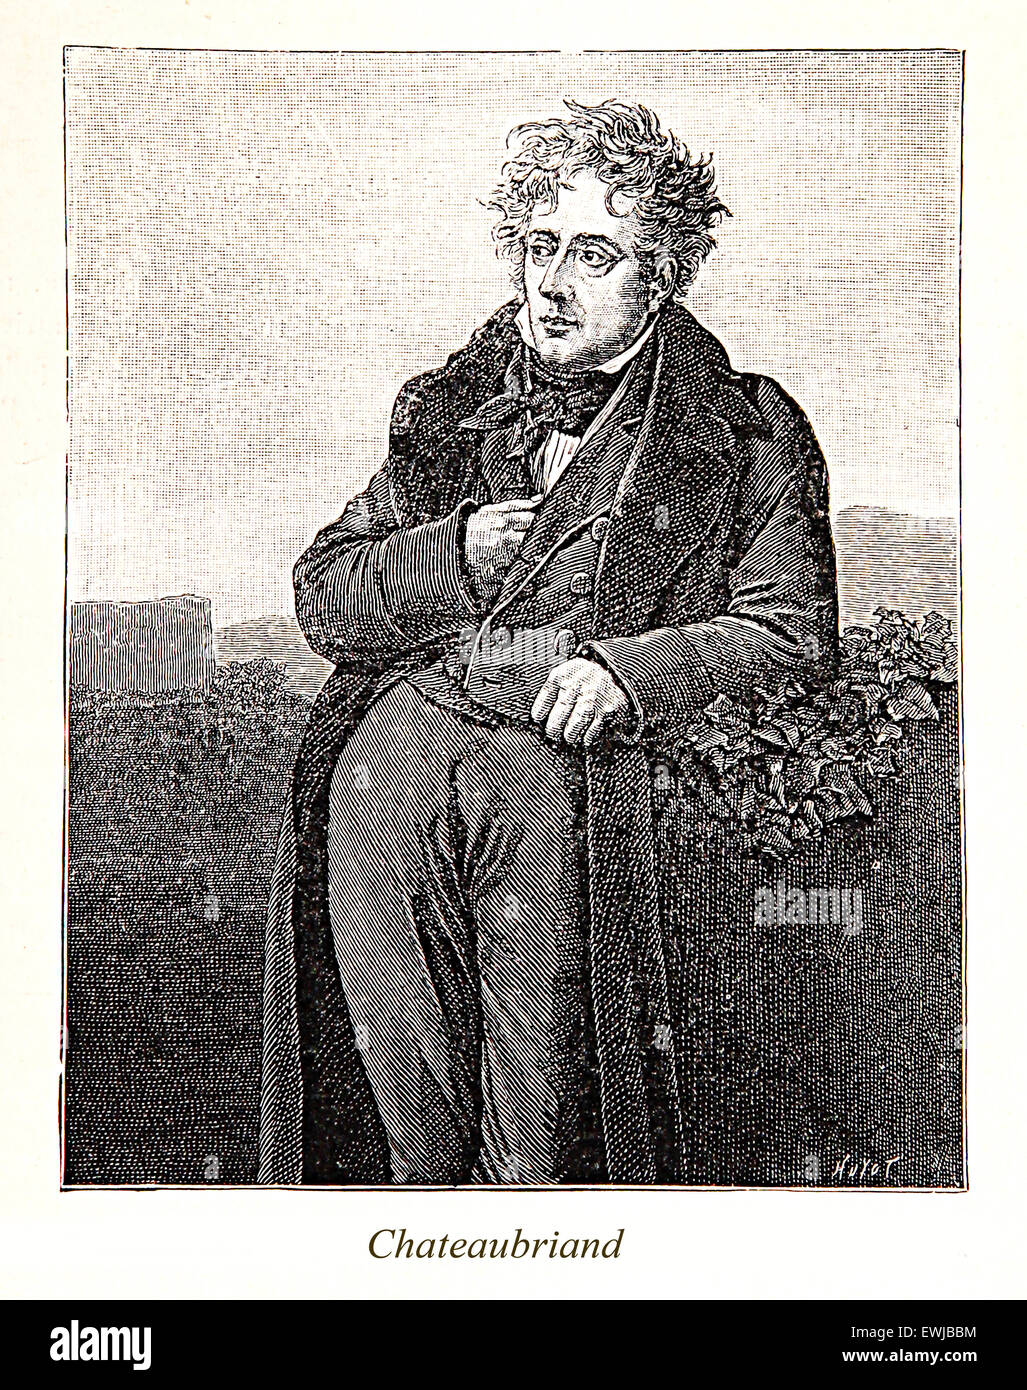 Engraving/portrait of François-René, vicomte de Chateaubriand: 18th century French writer and royalist - Stock Image